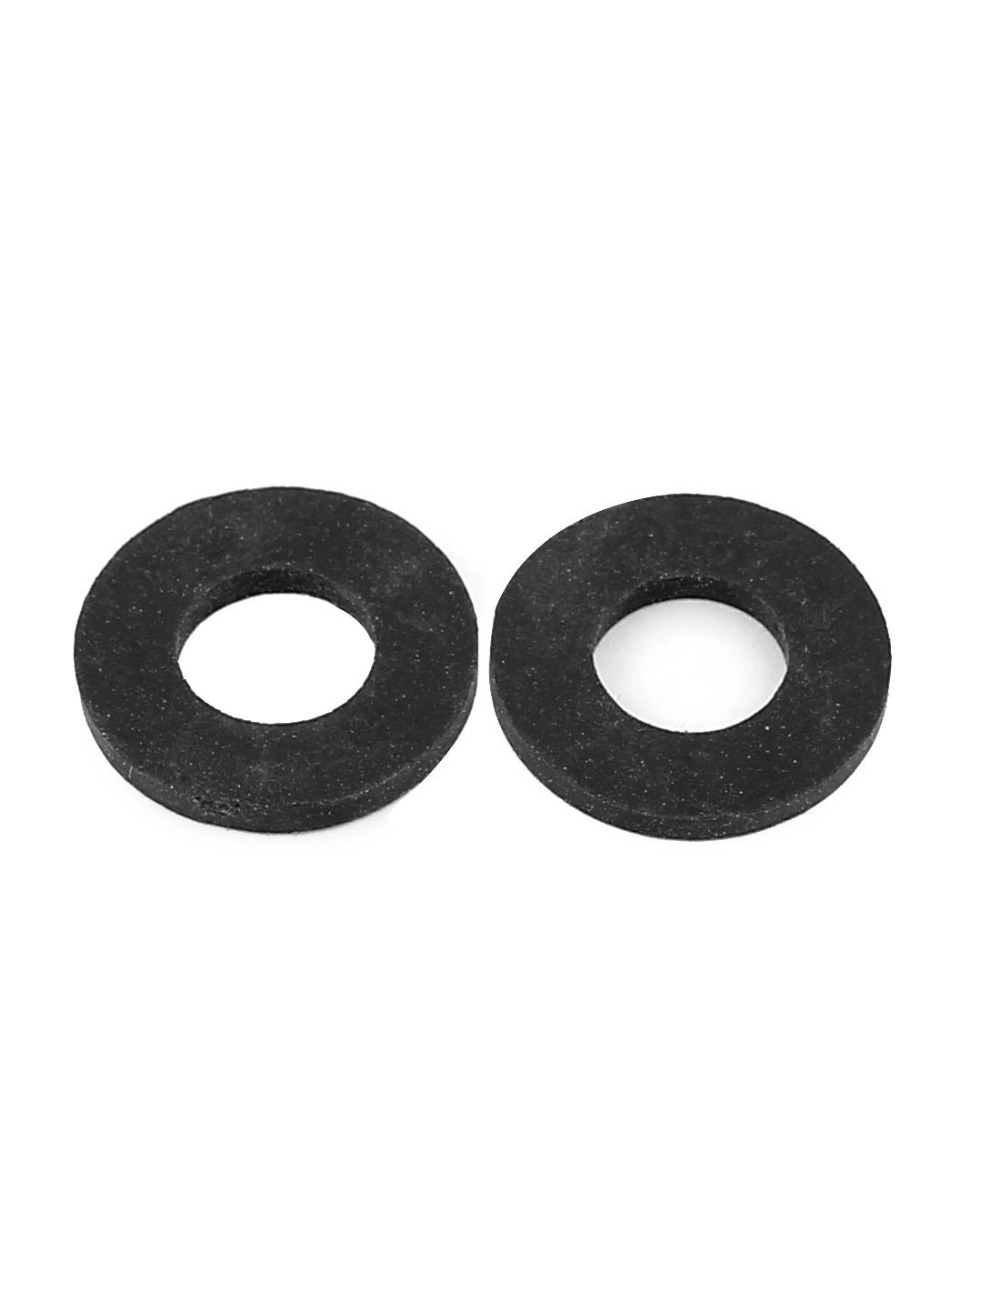 Water Pipe Tube Hose Rubber Seal Ring Gasket Washer 17x10x2mm 20 Pcs ...